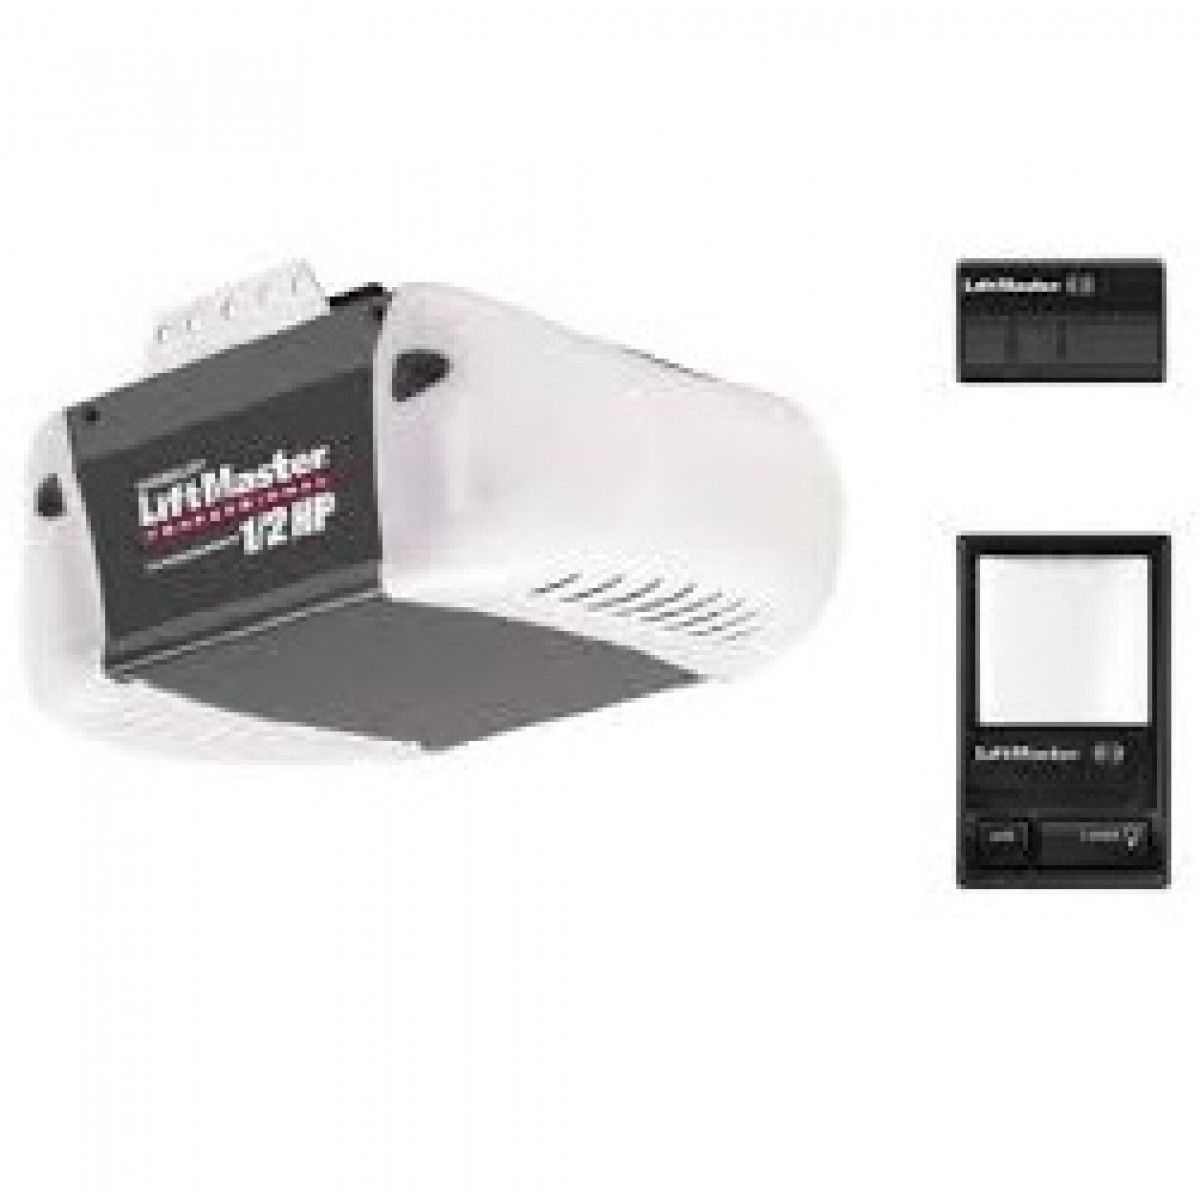 Liftmaster 3240 Premium Series 1 2 Hp Ac Screw Drive Garage Door Opener Liftmaster Garage Door Opener Liftmaster Liftmaster Garage Door